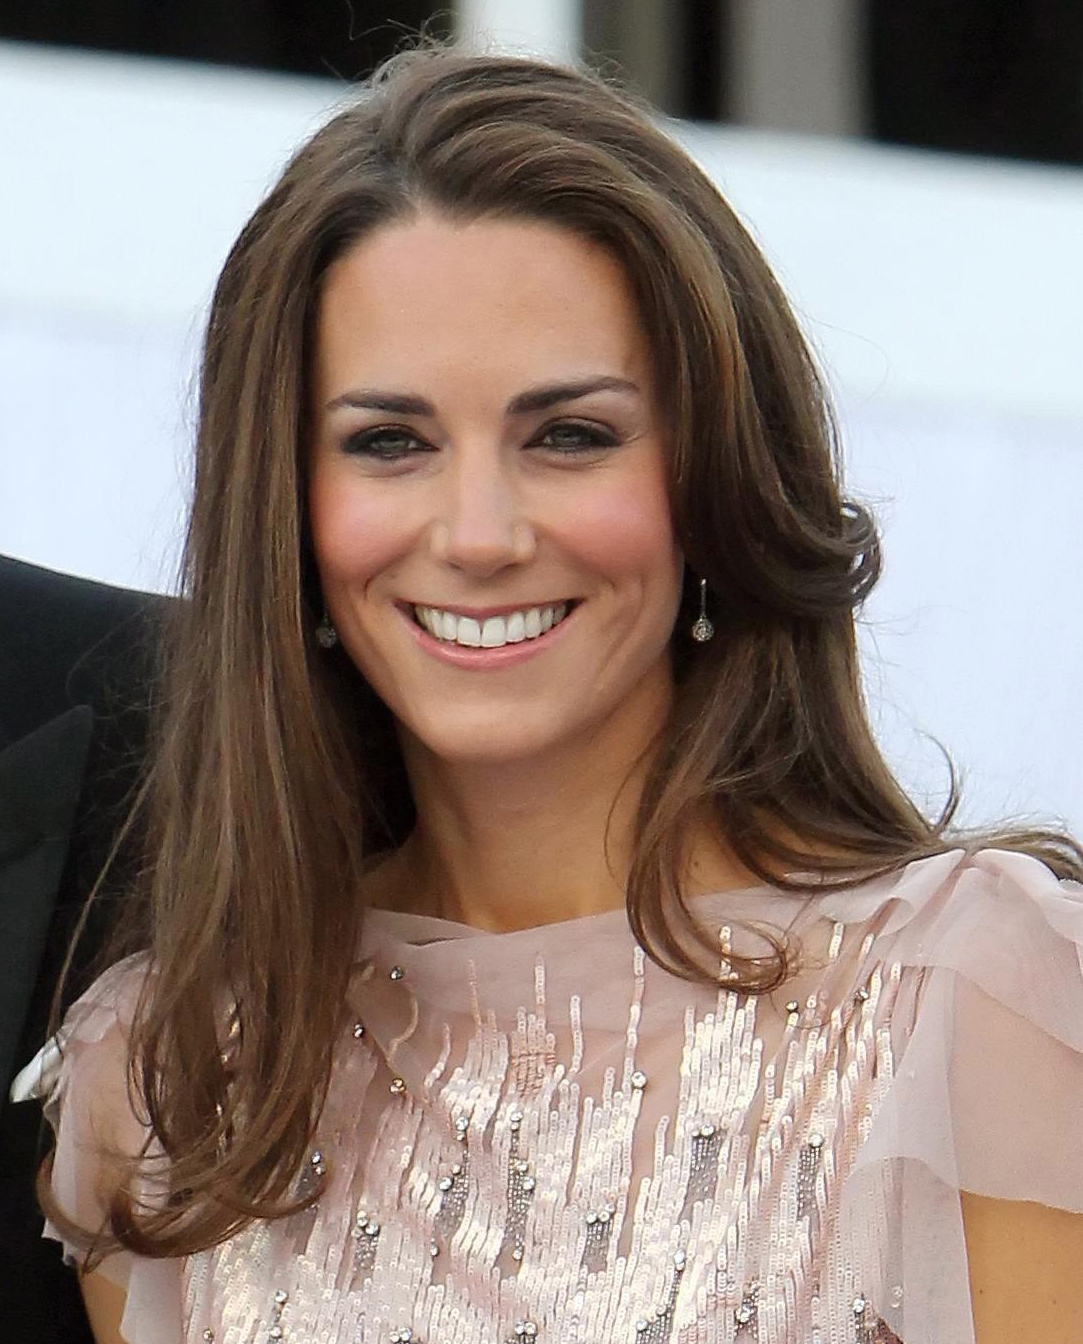 Cupidion Kate Middleton Pretty Wallpaper Images 1083x1344 1083x1344